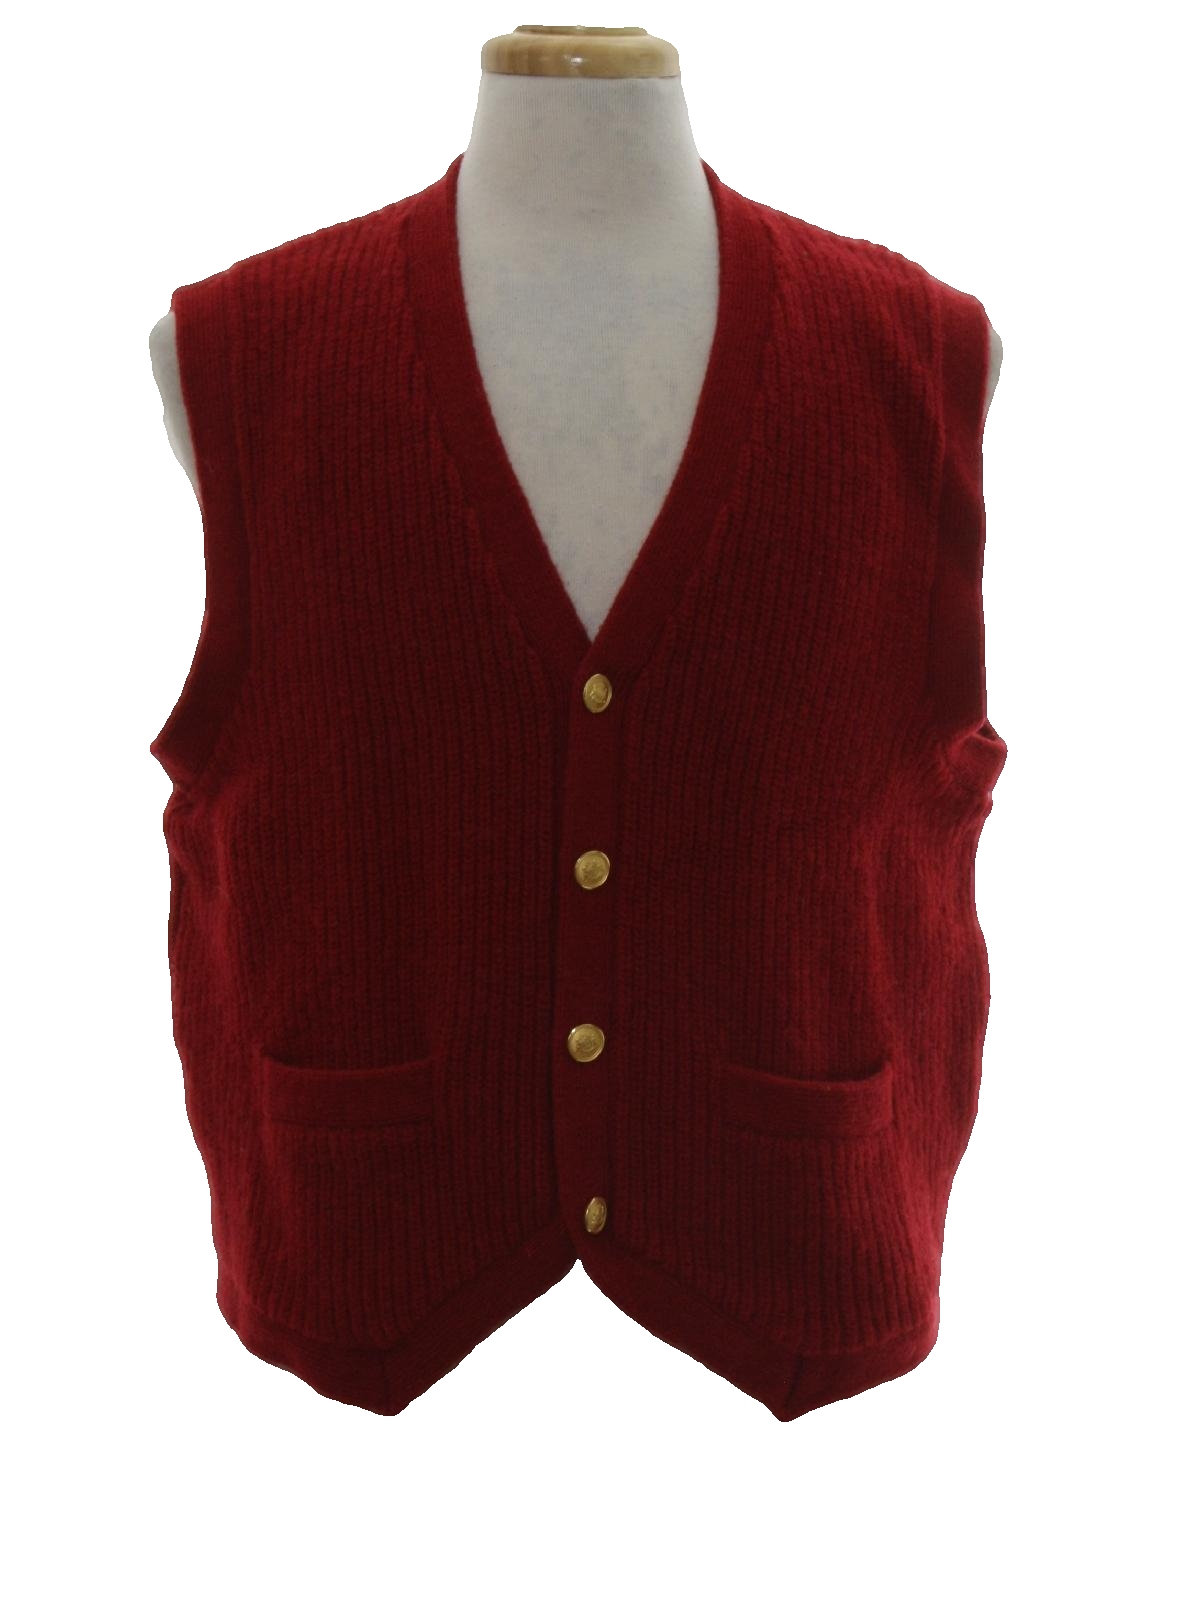 Retro 1980s Sweater: 80s -Orvis- Mens cranberry red shetland wool ...